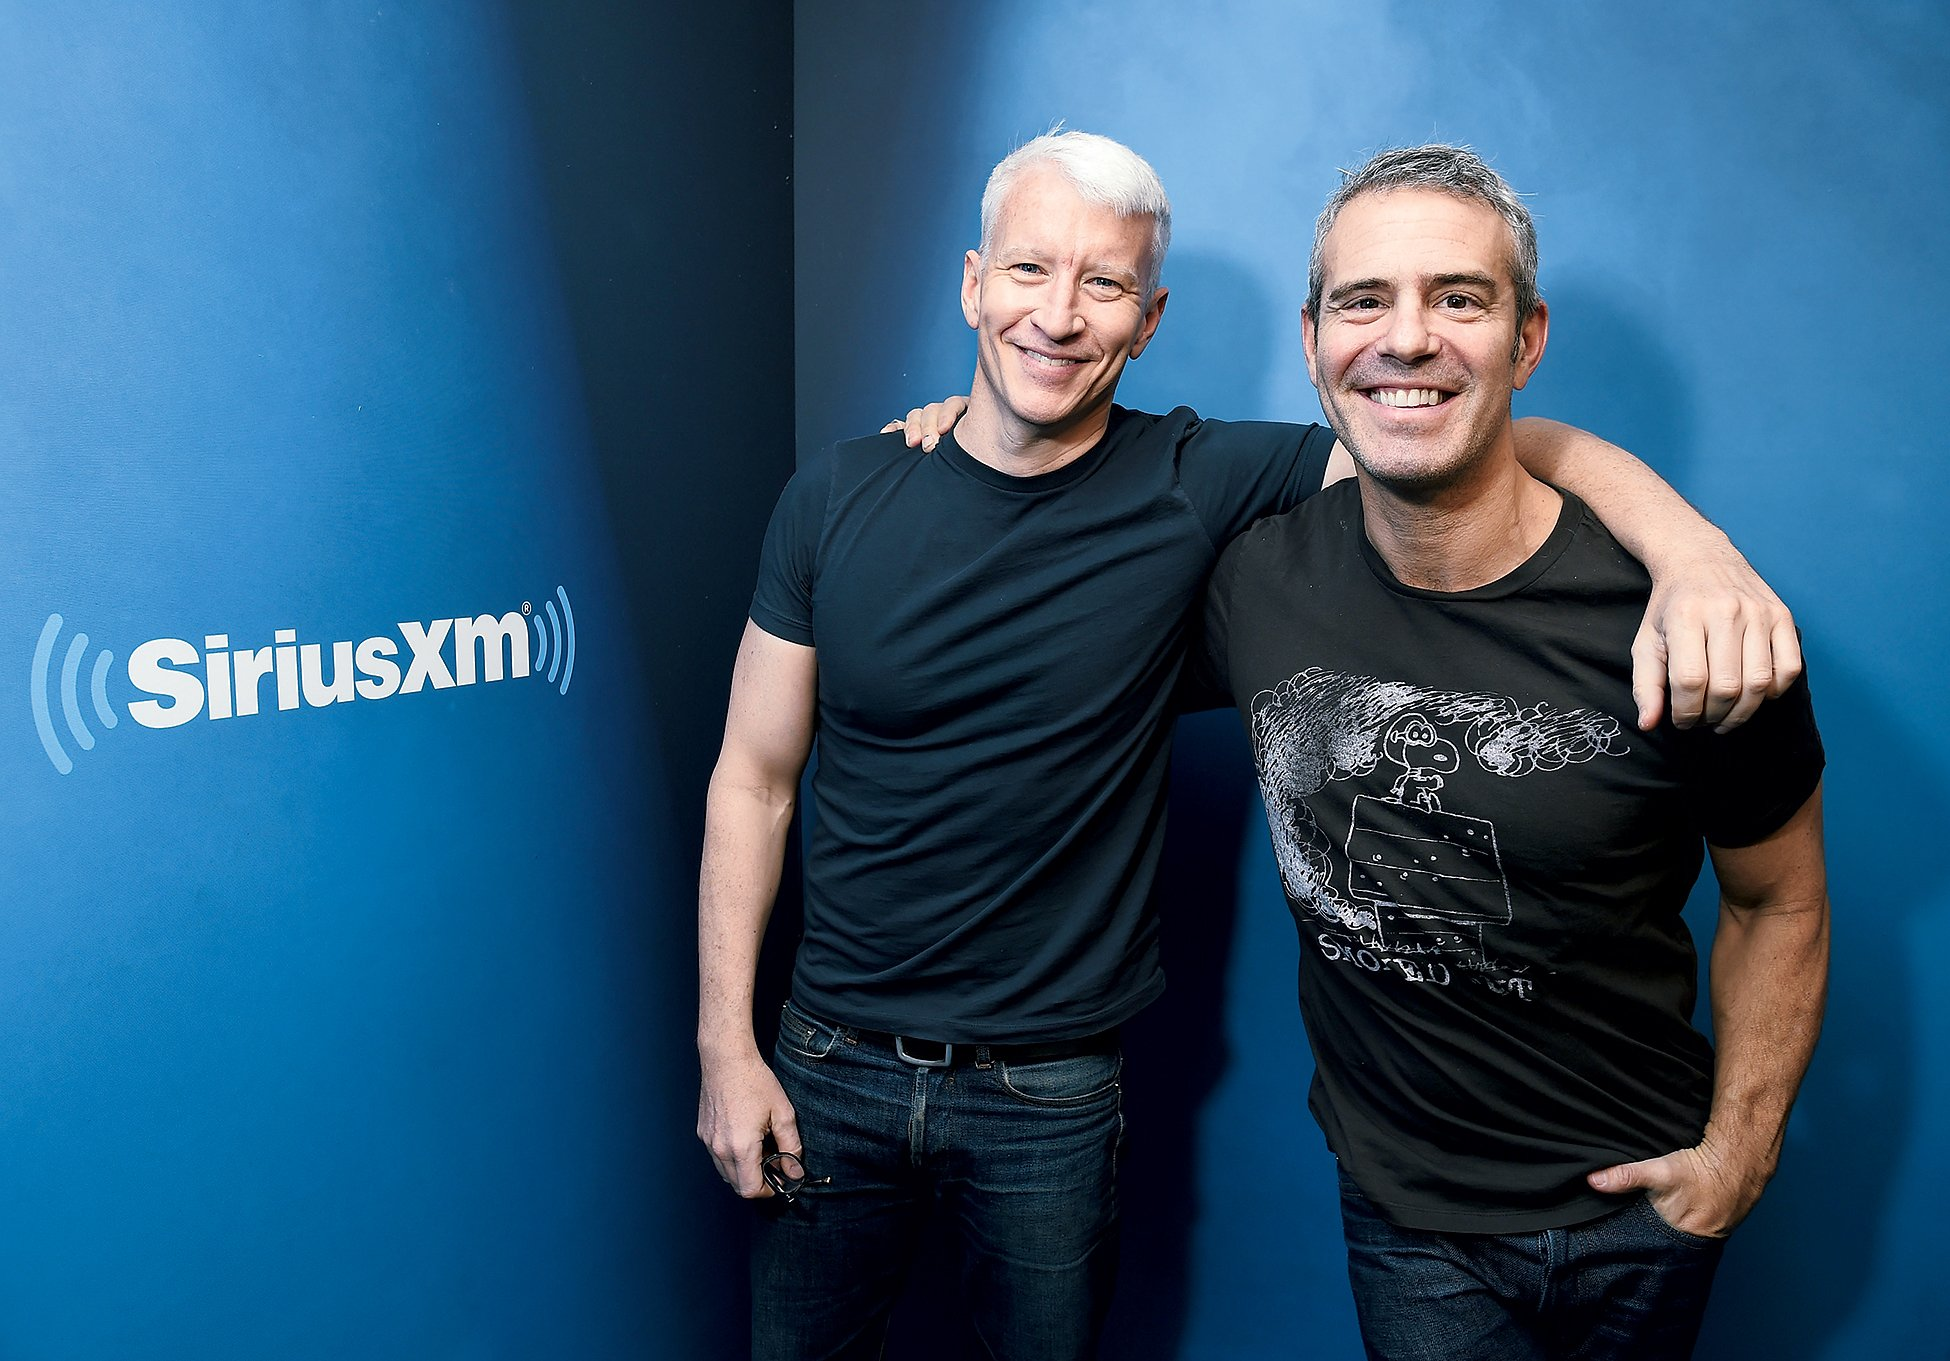 Anderson Cooper (left) and Andy Cohen. Photograph by Michael Loccisano/Getty Images.